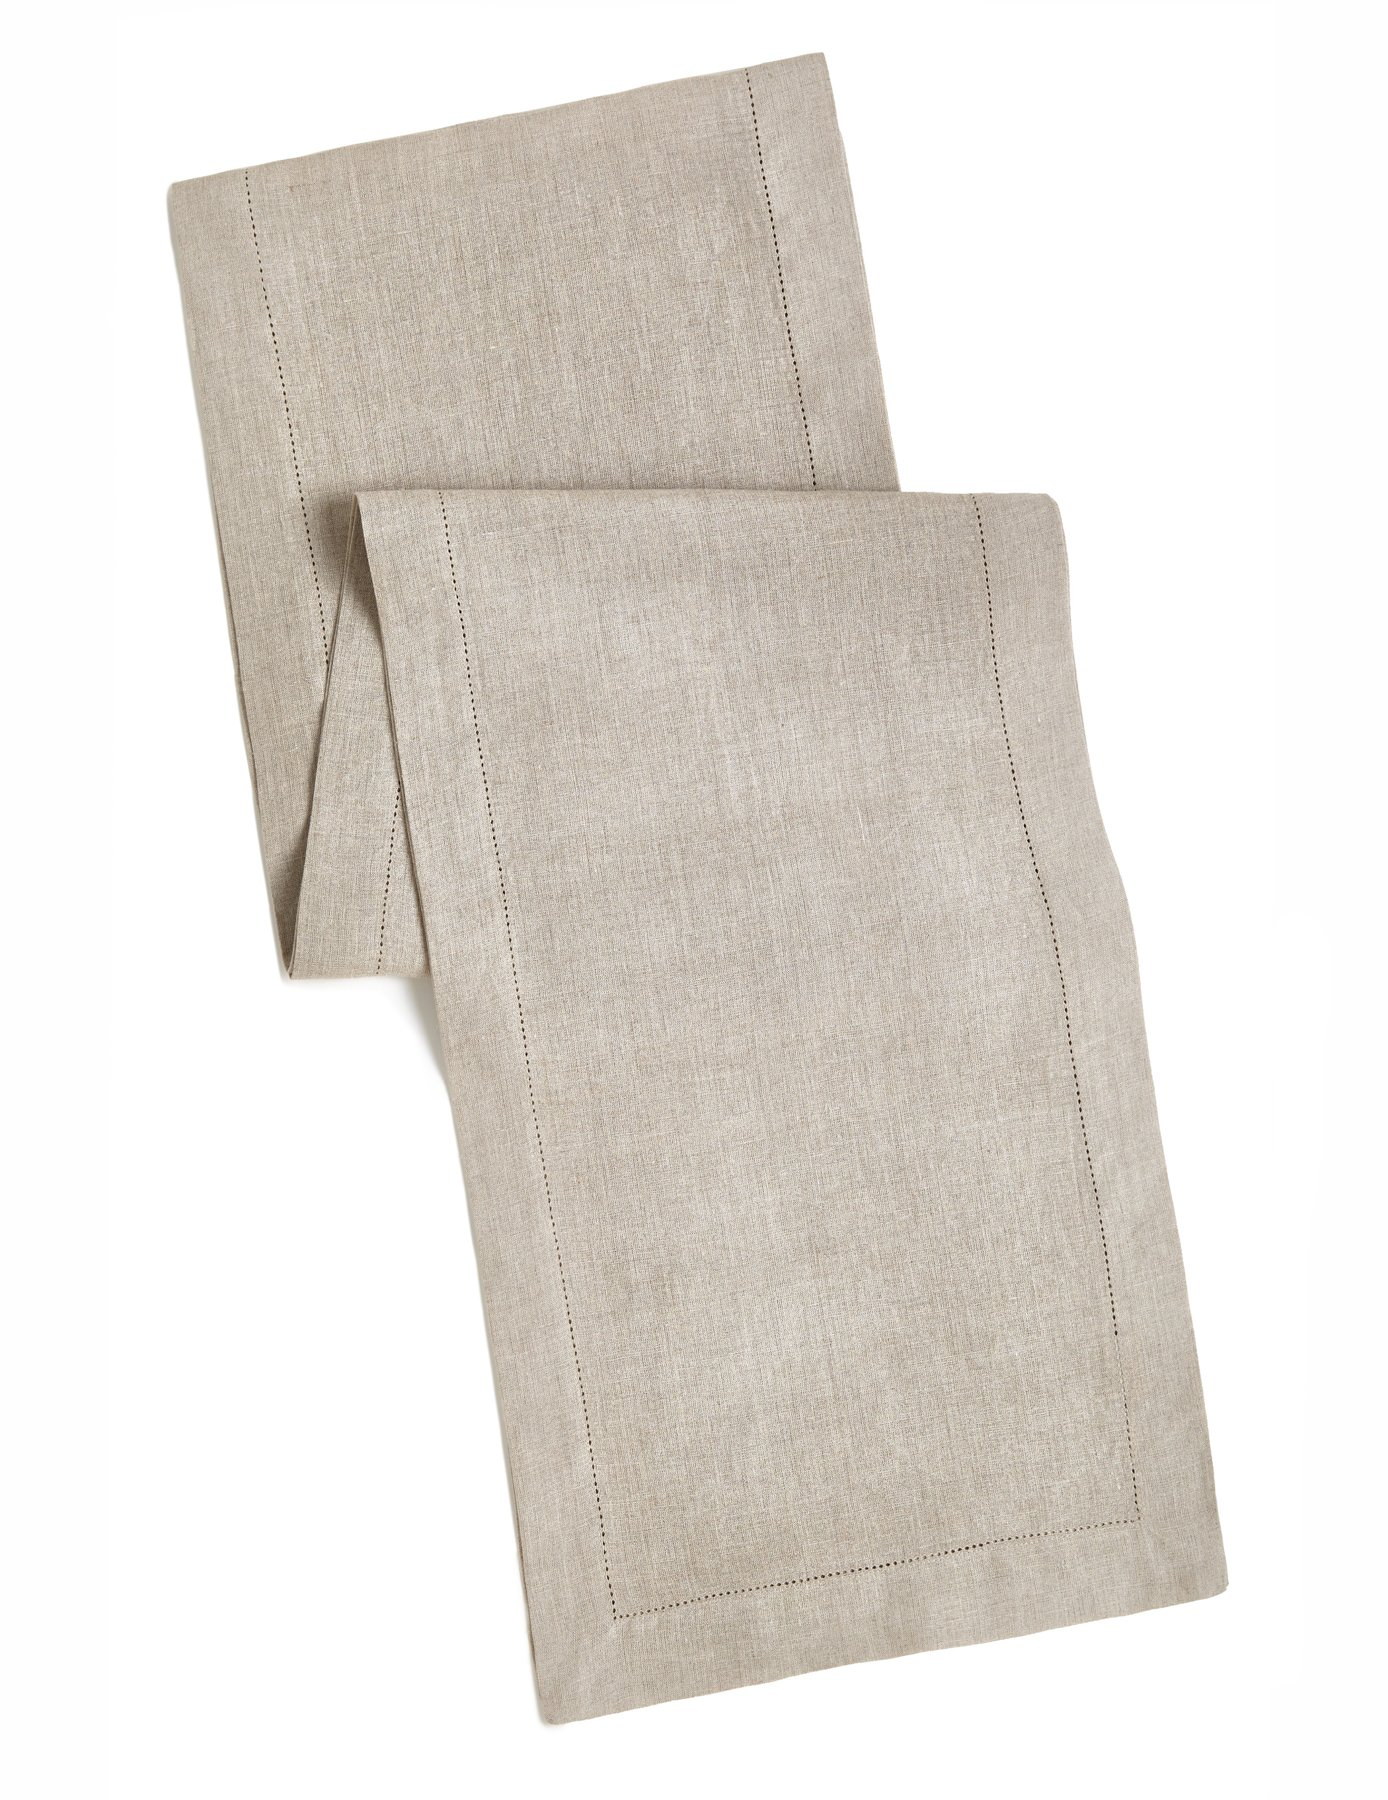 100% Linen Hemstitch Table Runner - Size 16x72 Natural - Hand Crafted and Hand Stitched Table Runner with Hemstitch detailing. The pure Linen fabric works well in both casual and formal settings